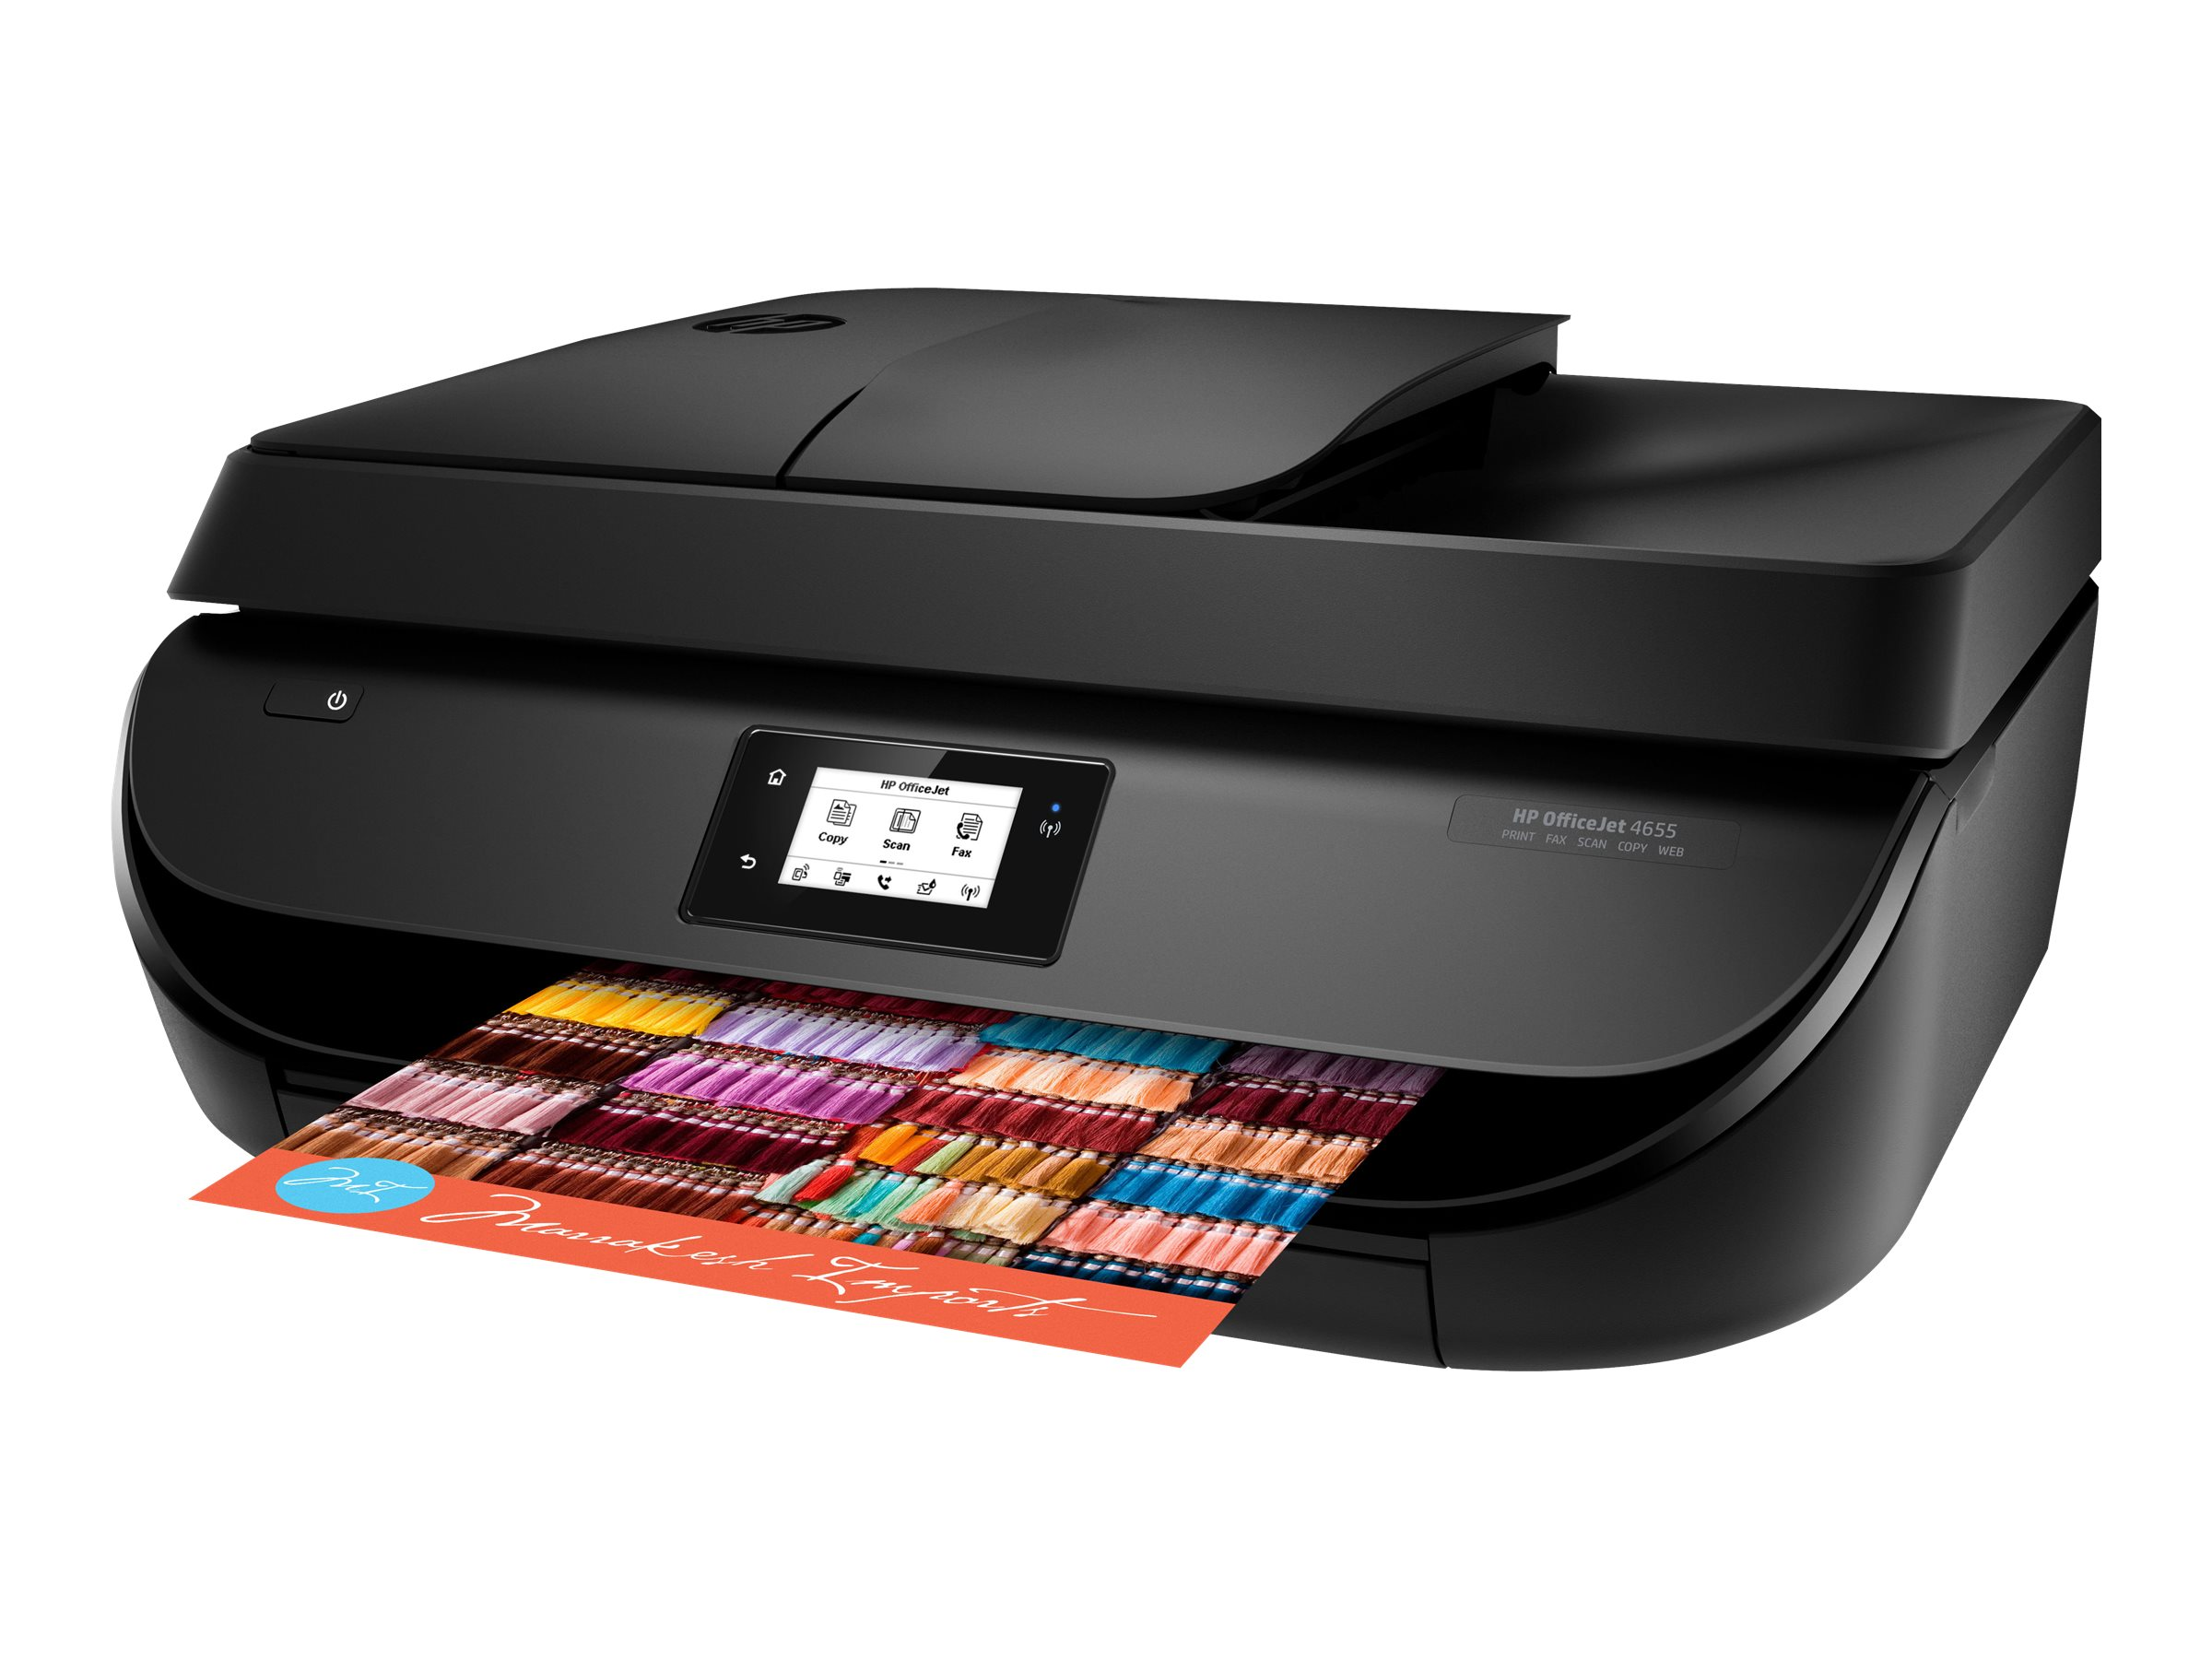 HP Officejet 4655 All-in-One multifunction printer (color) by HP